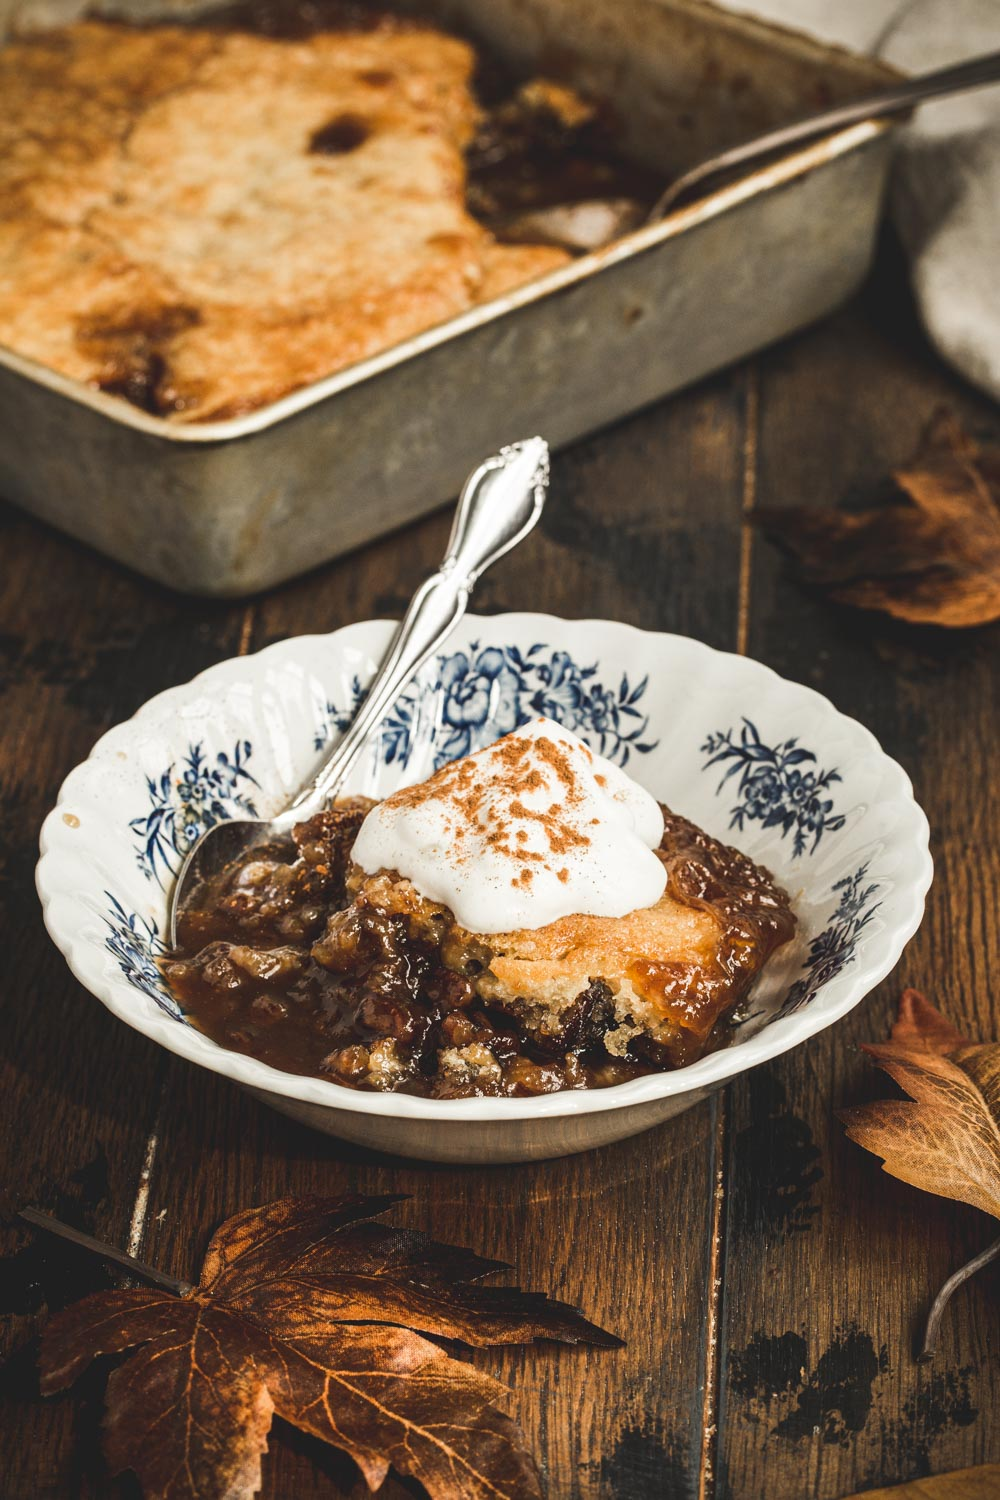 Pecan pie cobbler topped with whipped cream and cinnamon in a dessert bowl with a silver spoon.